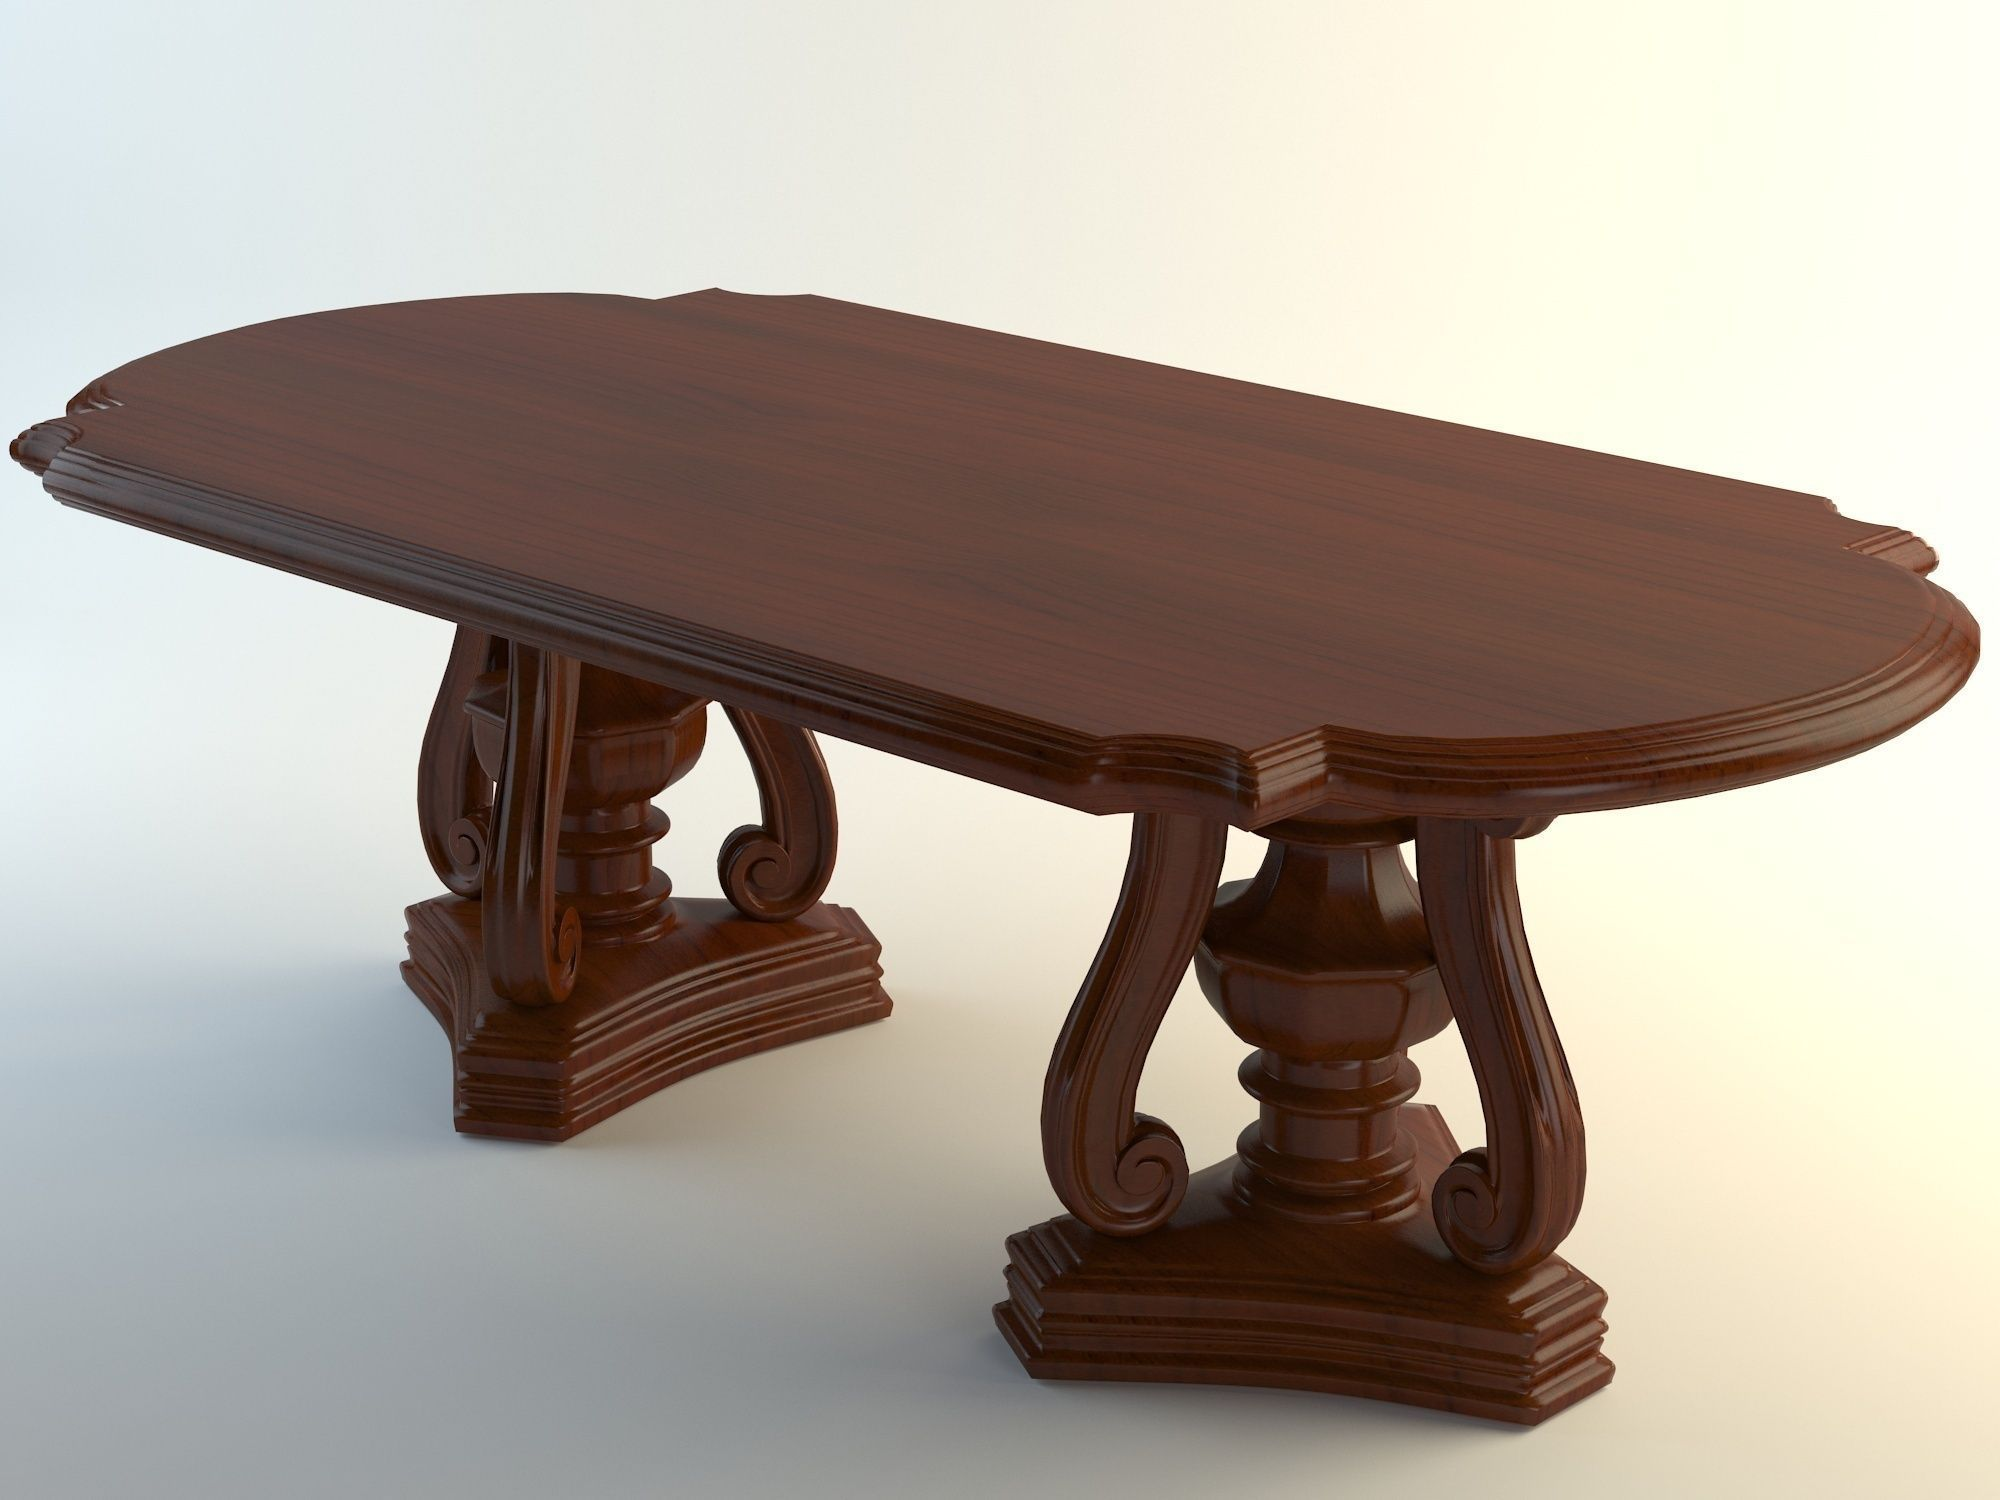 Max A Table Table 3d Model Max Obj 3ds Fbx Cgtrader